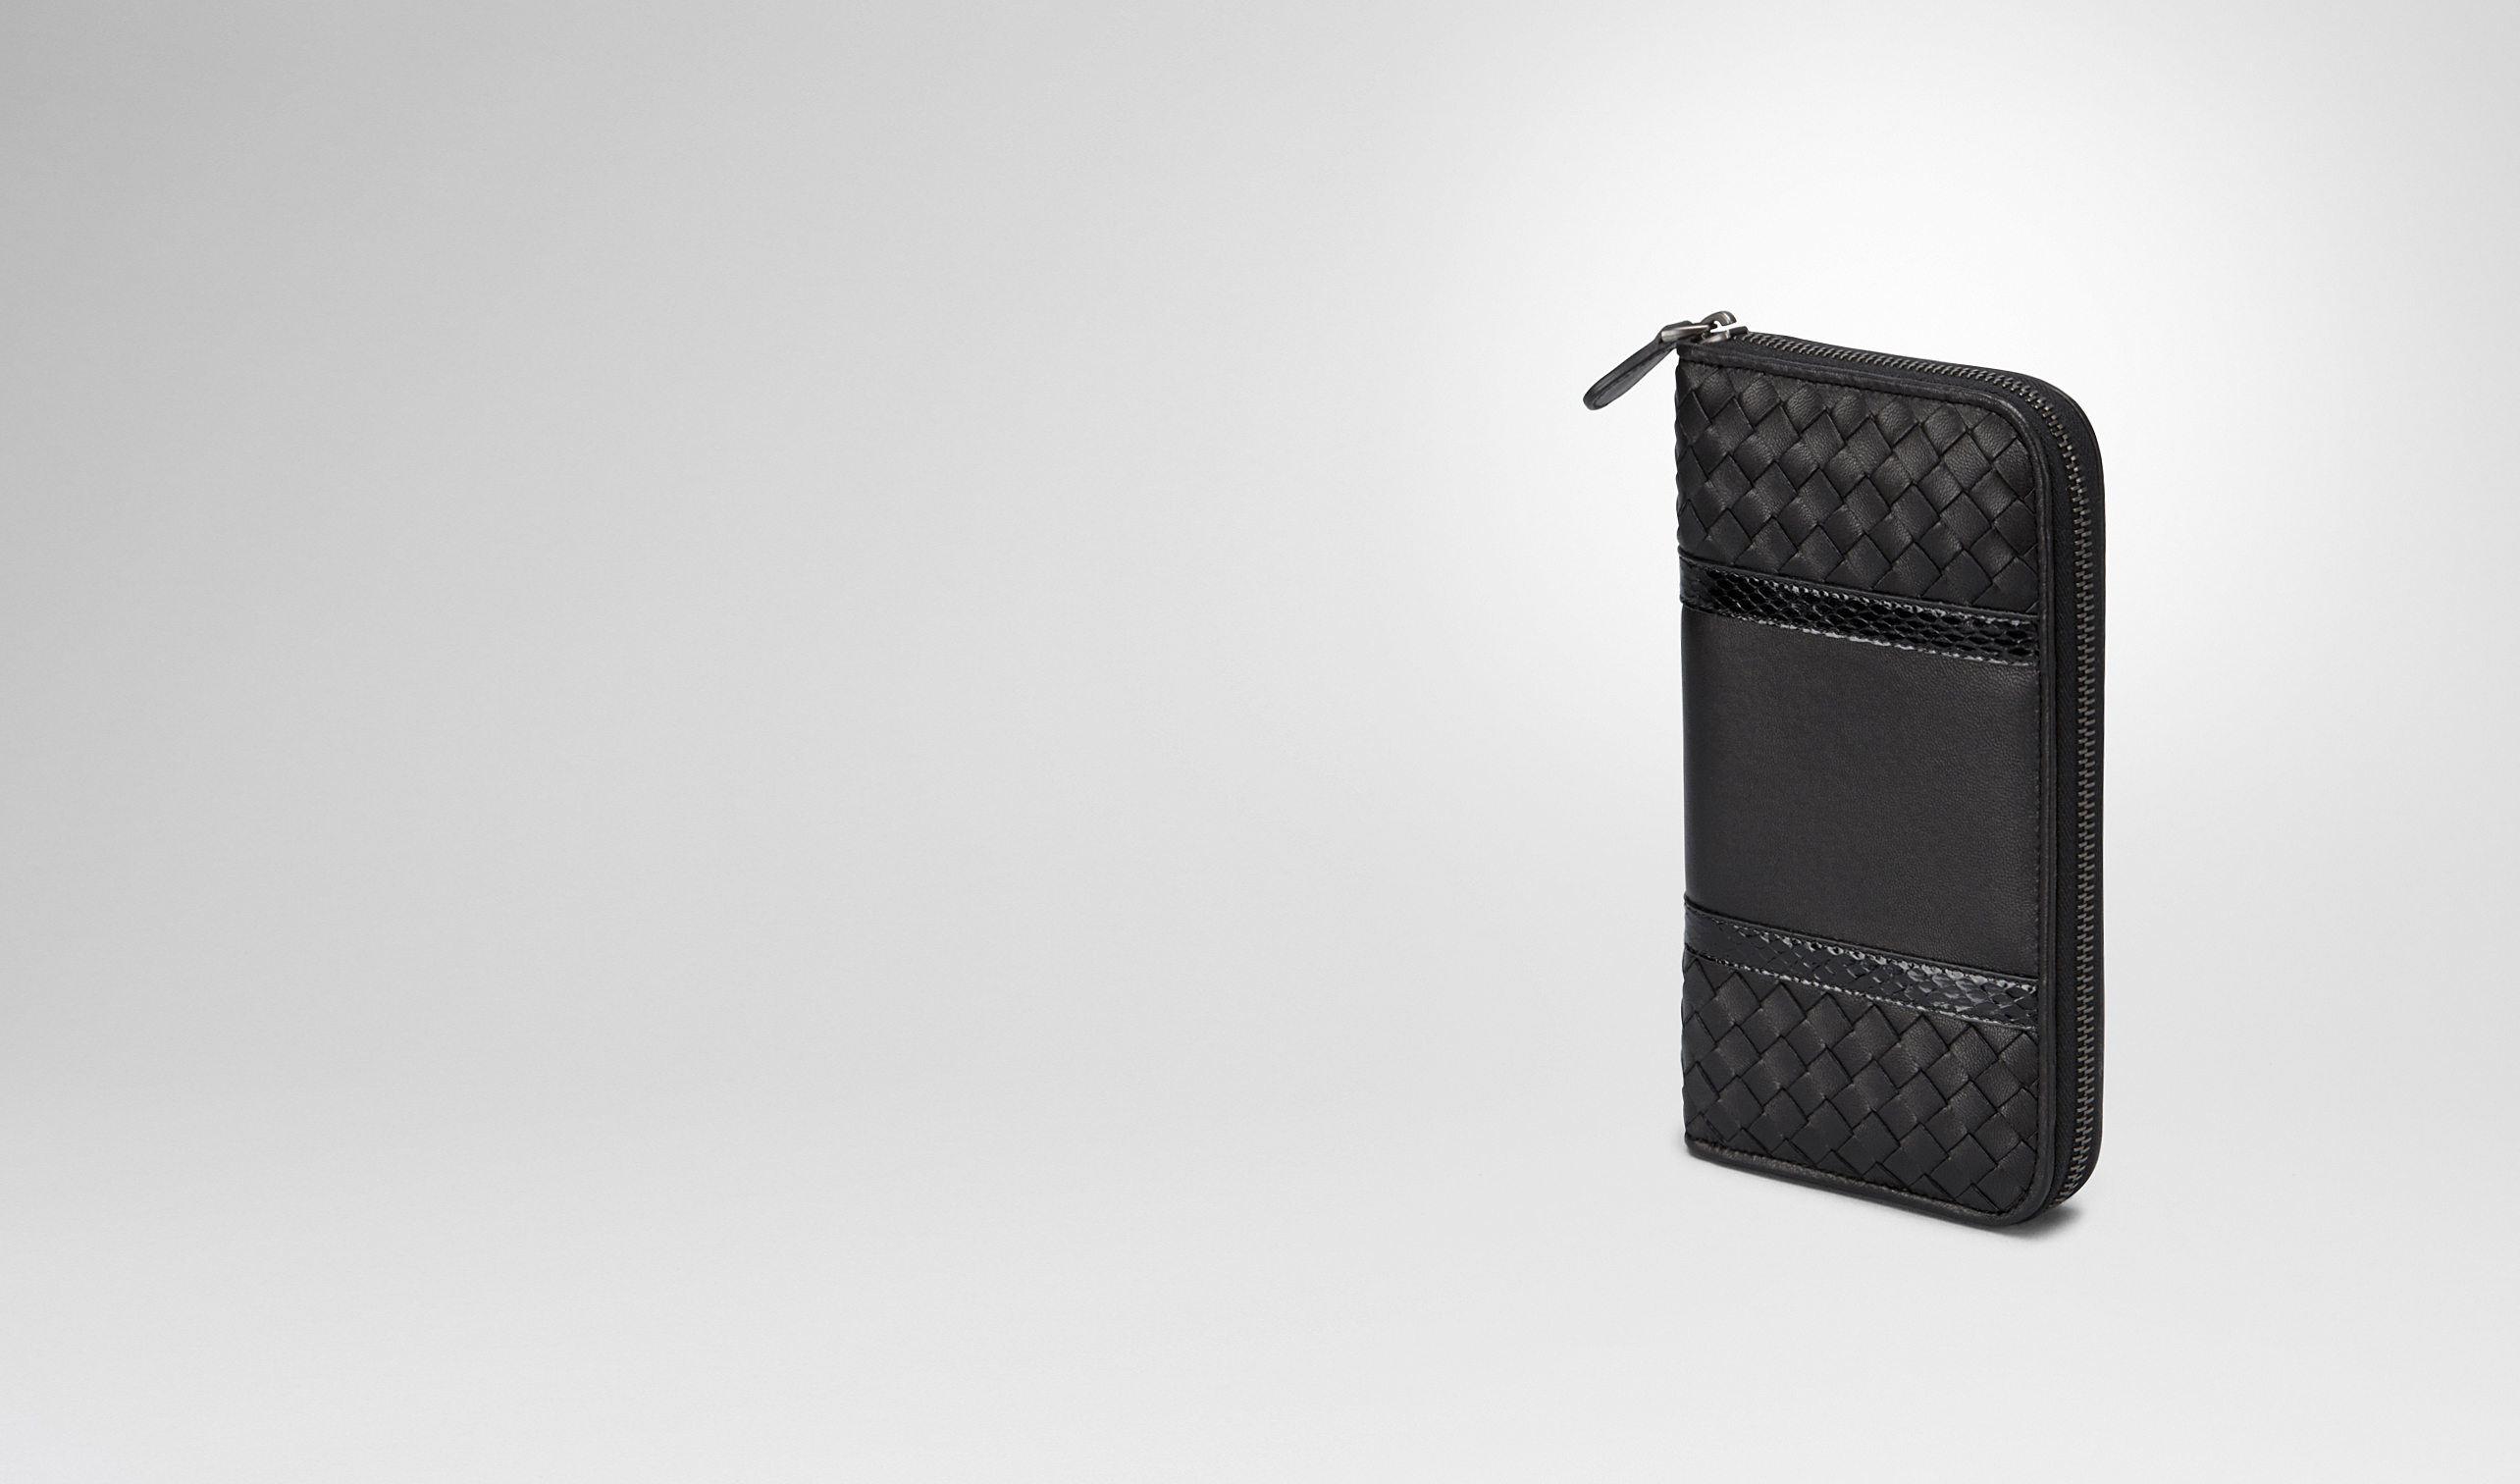 BOTTEGA VENETA Zip Around Wallet D ZIP AROUND WALLET IN NERO INTRECCIATO NAPPA, AYERS DETAILS pl